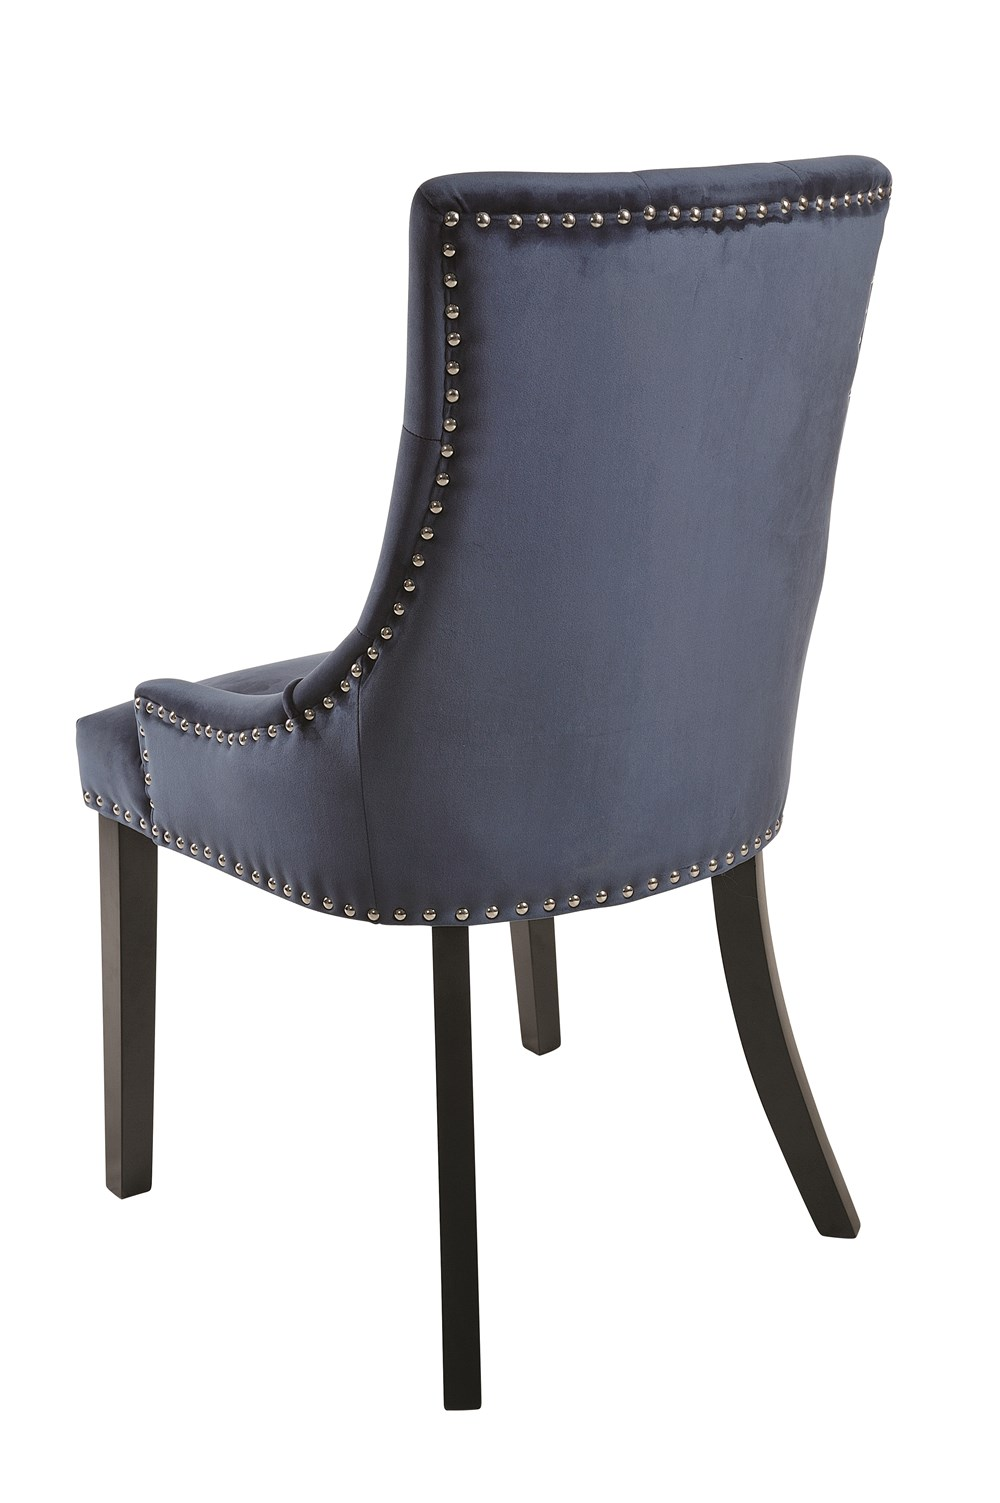 VICKY CHAIR Prussian Blue Upholstered Chair Black Legs